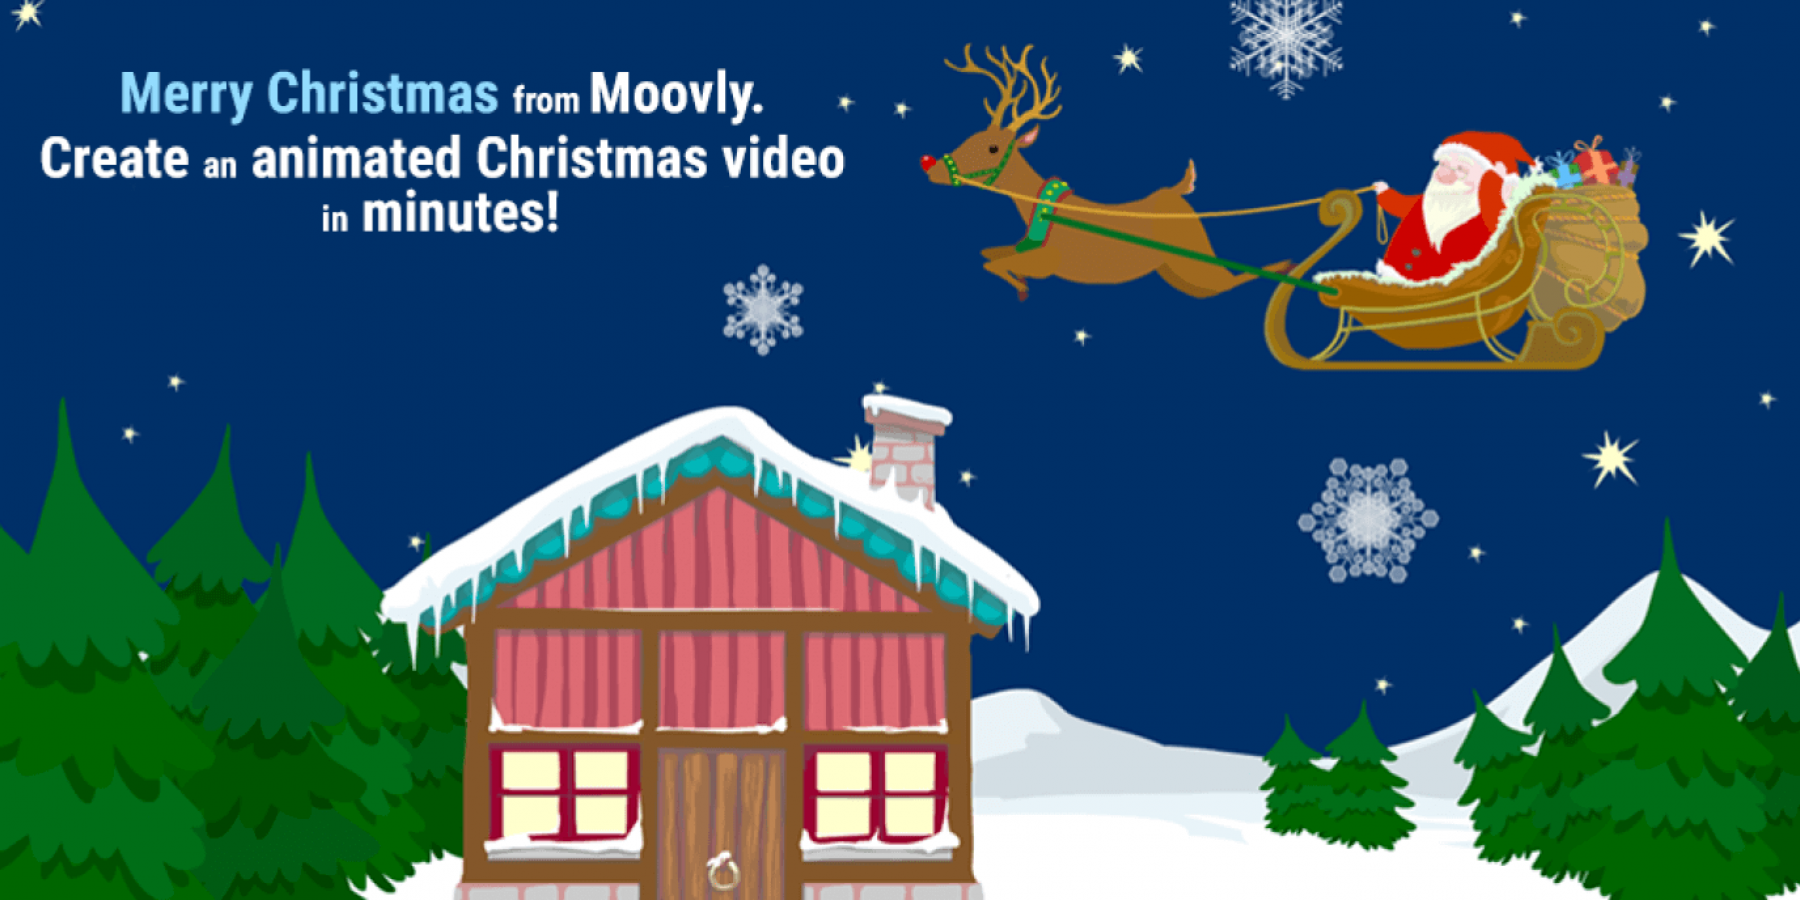 Christmas-generate-free-video-with-Moovly-make-animation-and-wish-your-friends-and-family-all-the-best